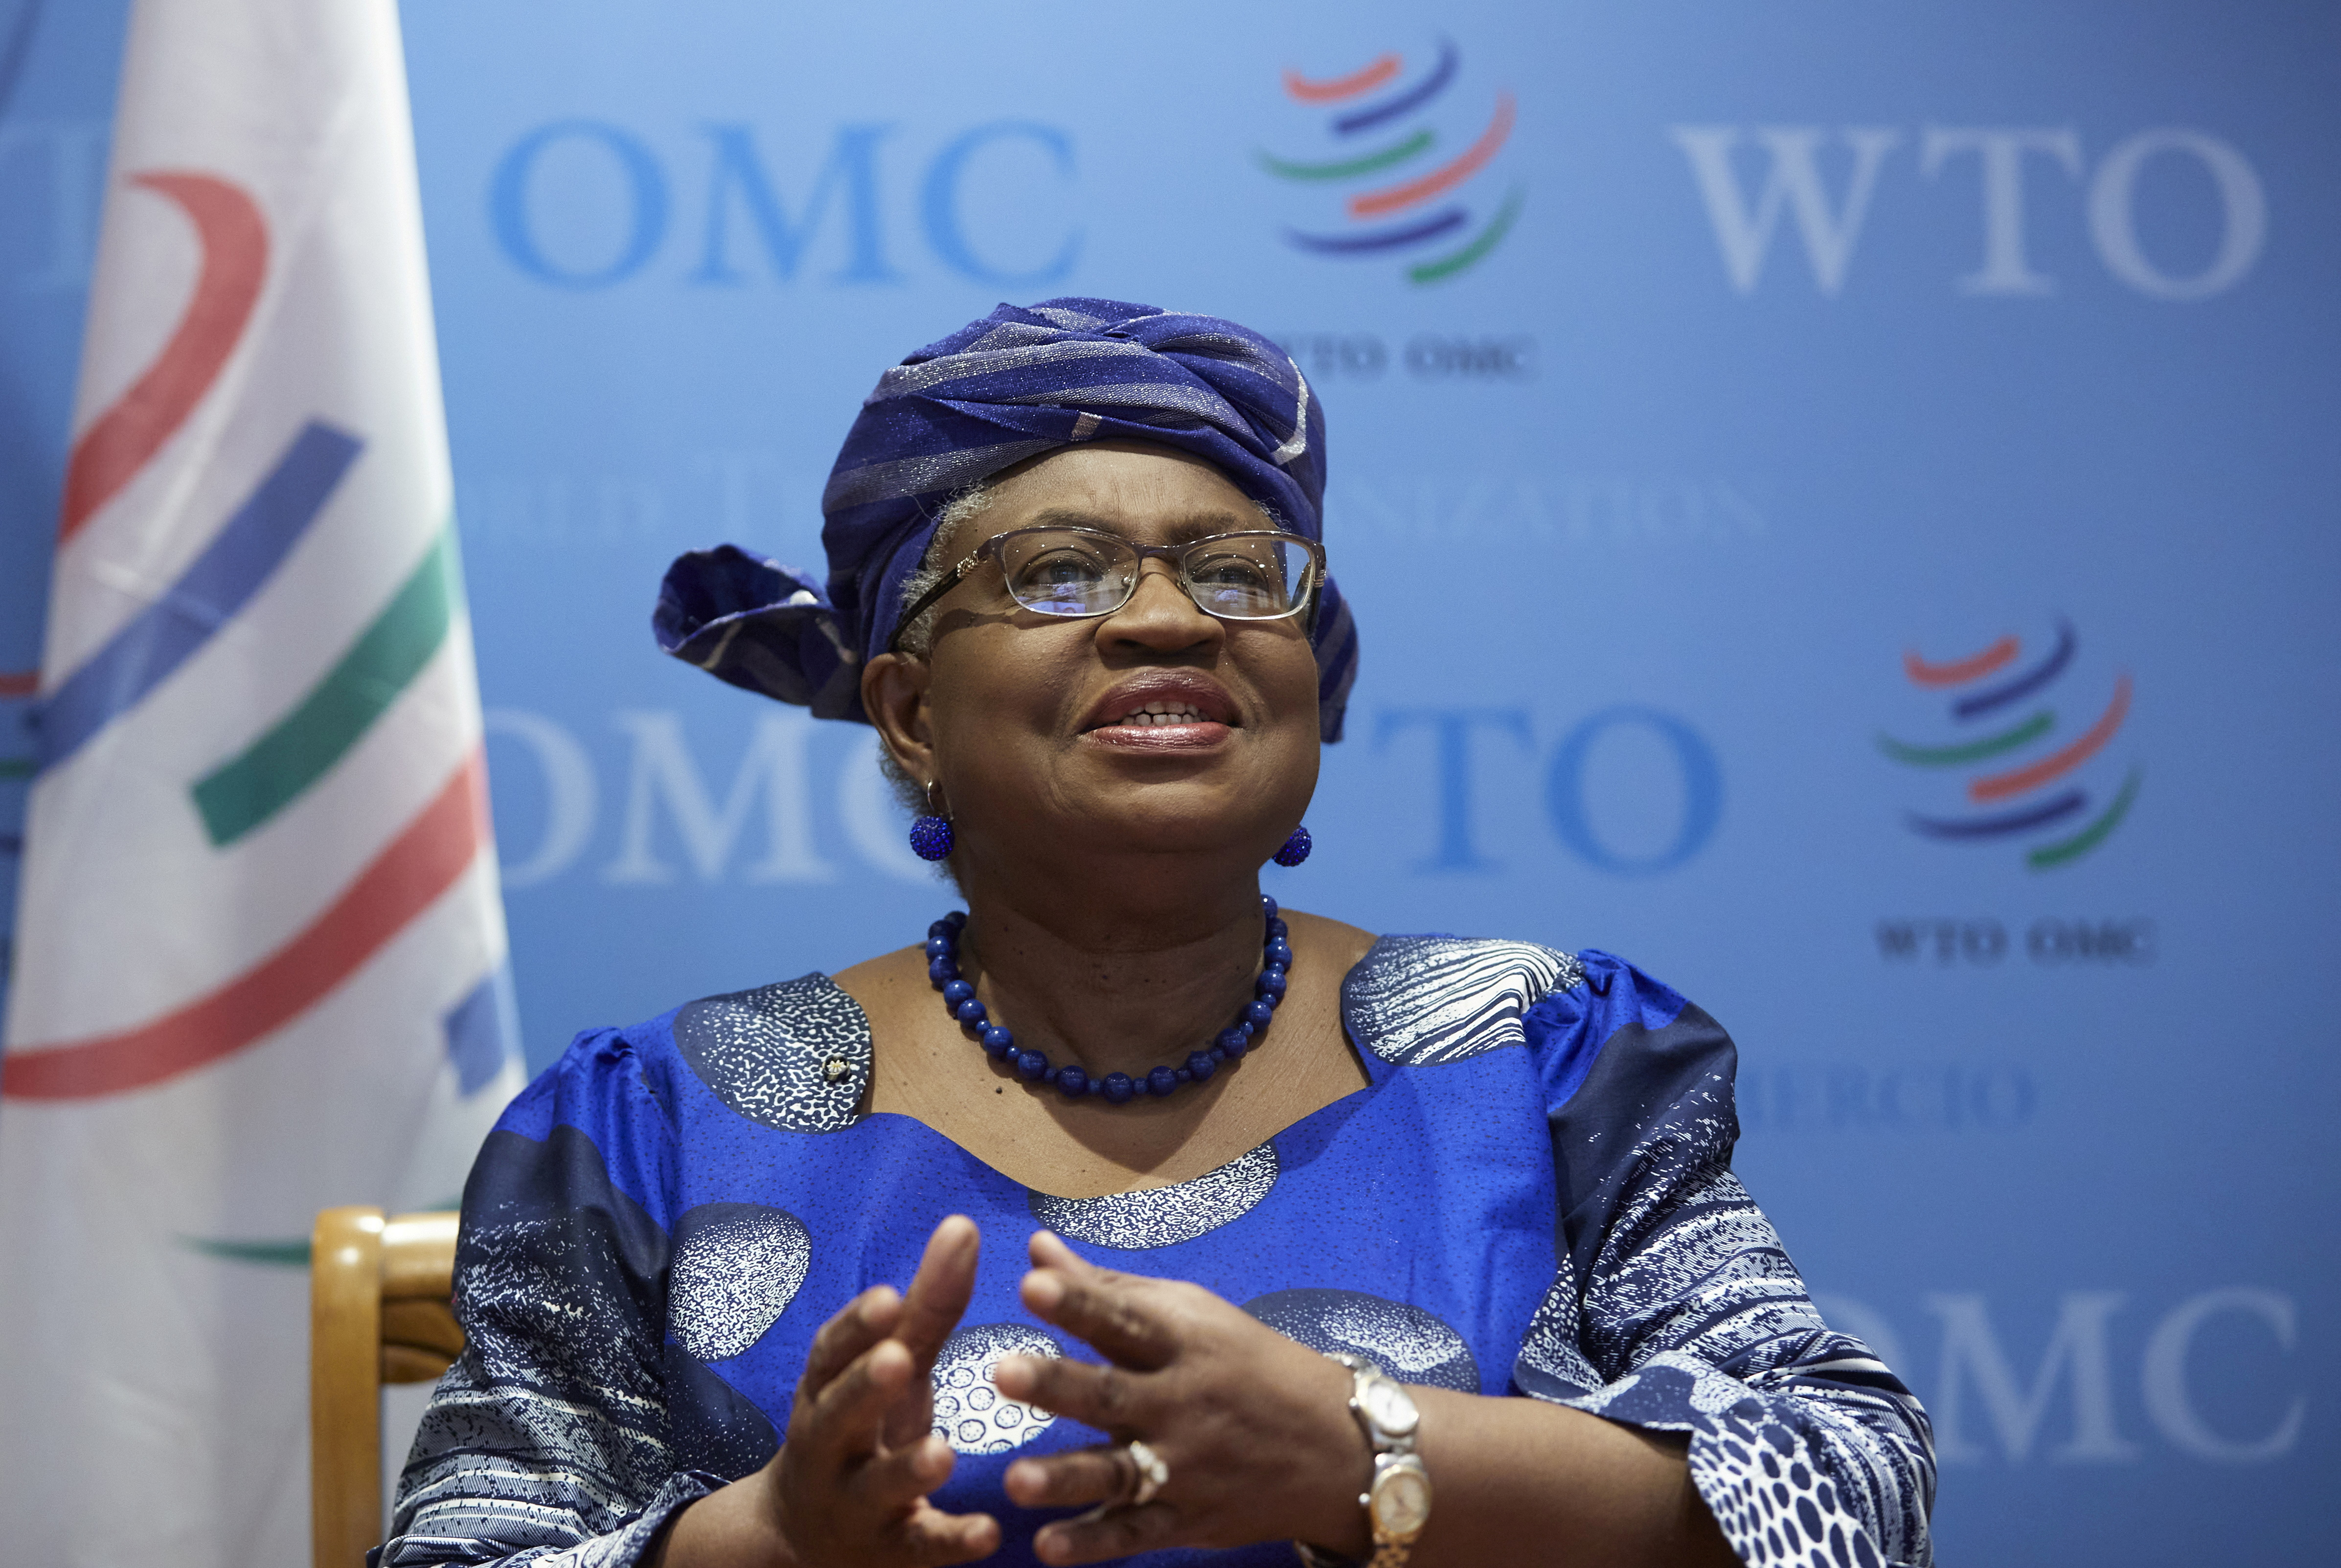 World Trade Organisation (WTO) Director-General Ngozi Okonjo-Iweala attends an interview with Reuters at the WTO headquarters in Geneva, Switzerland, April 12, 2021. REUTERS/Denis Balibouse/File Photo